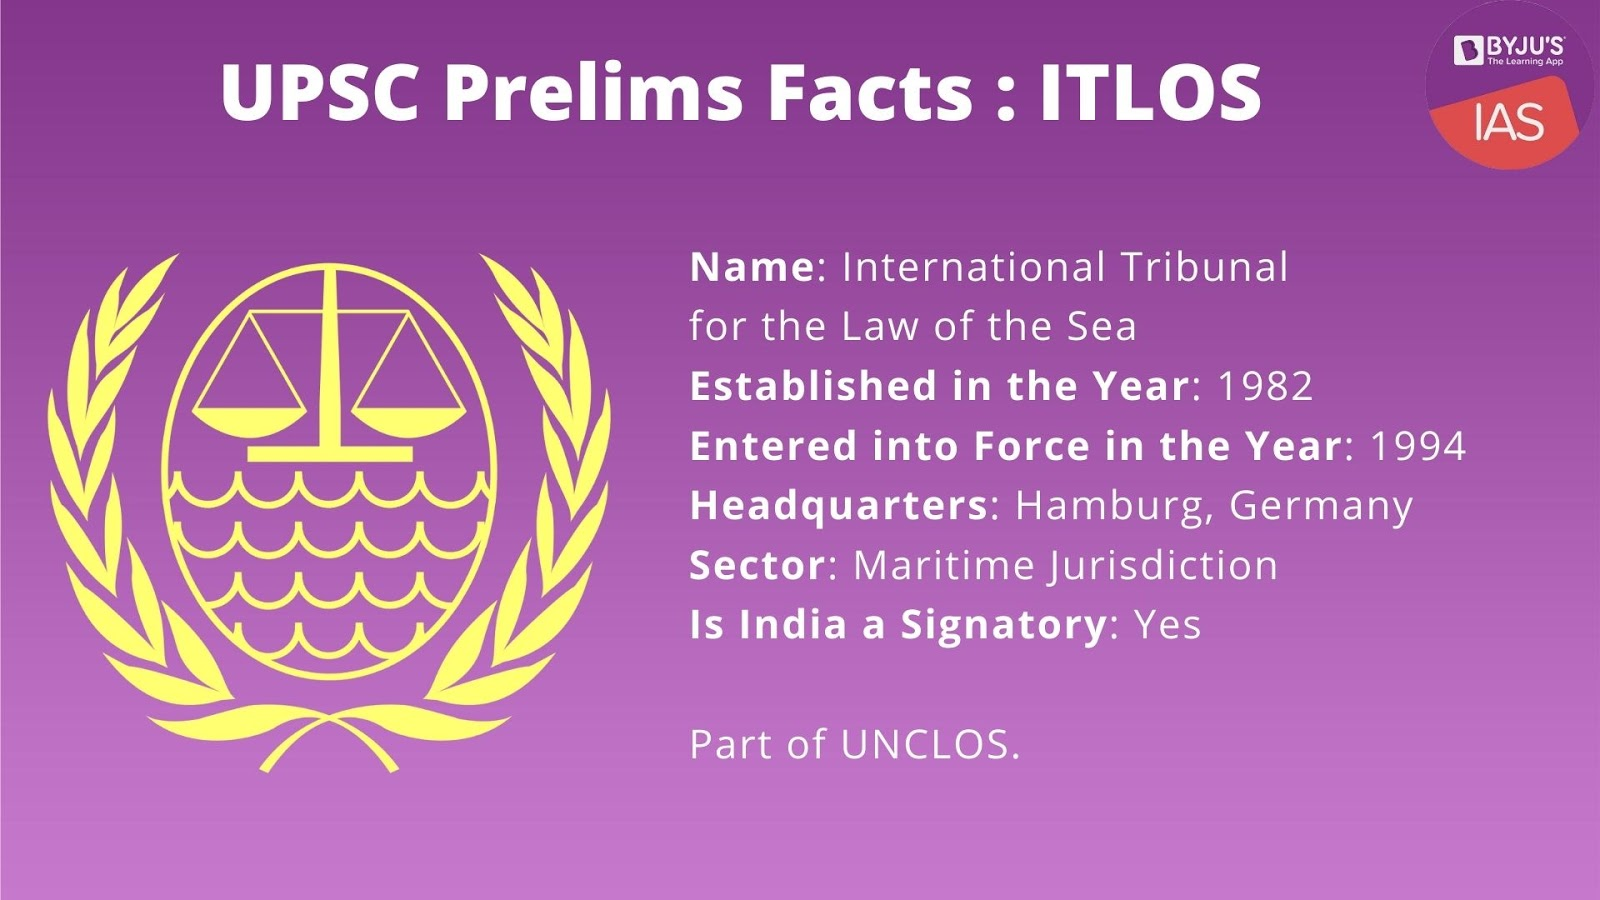 UPSC Prelims Facts - ITLOS